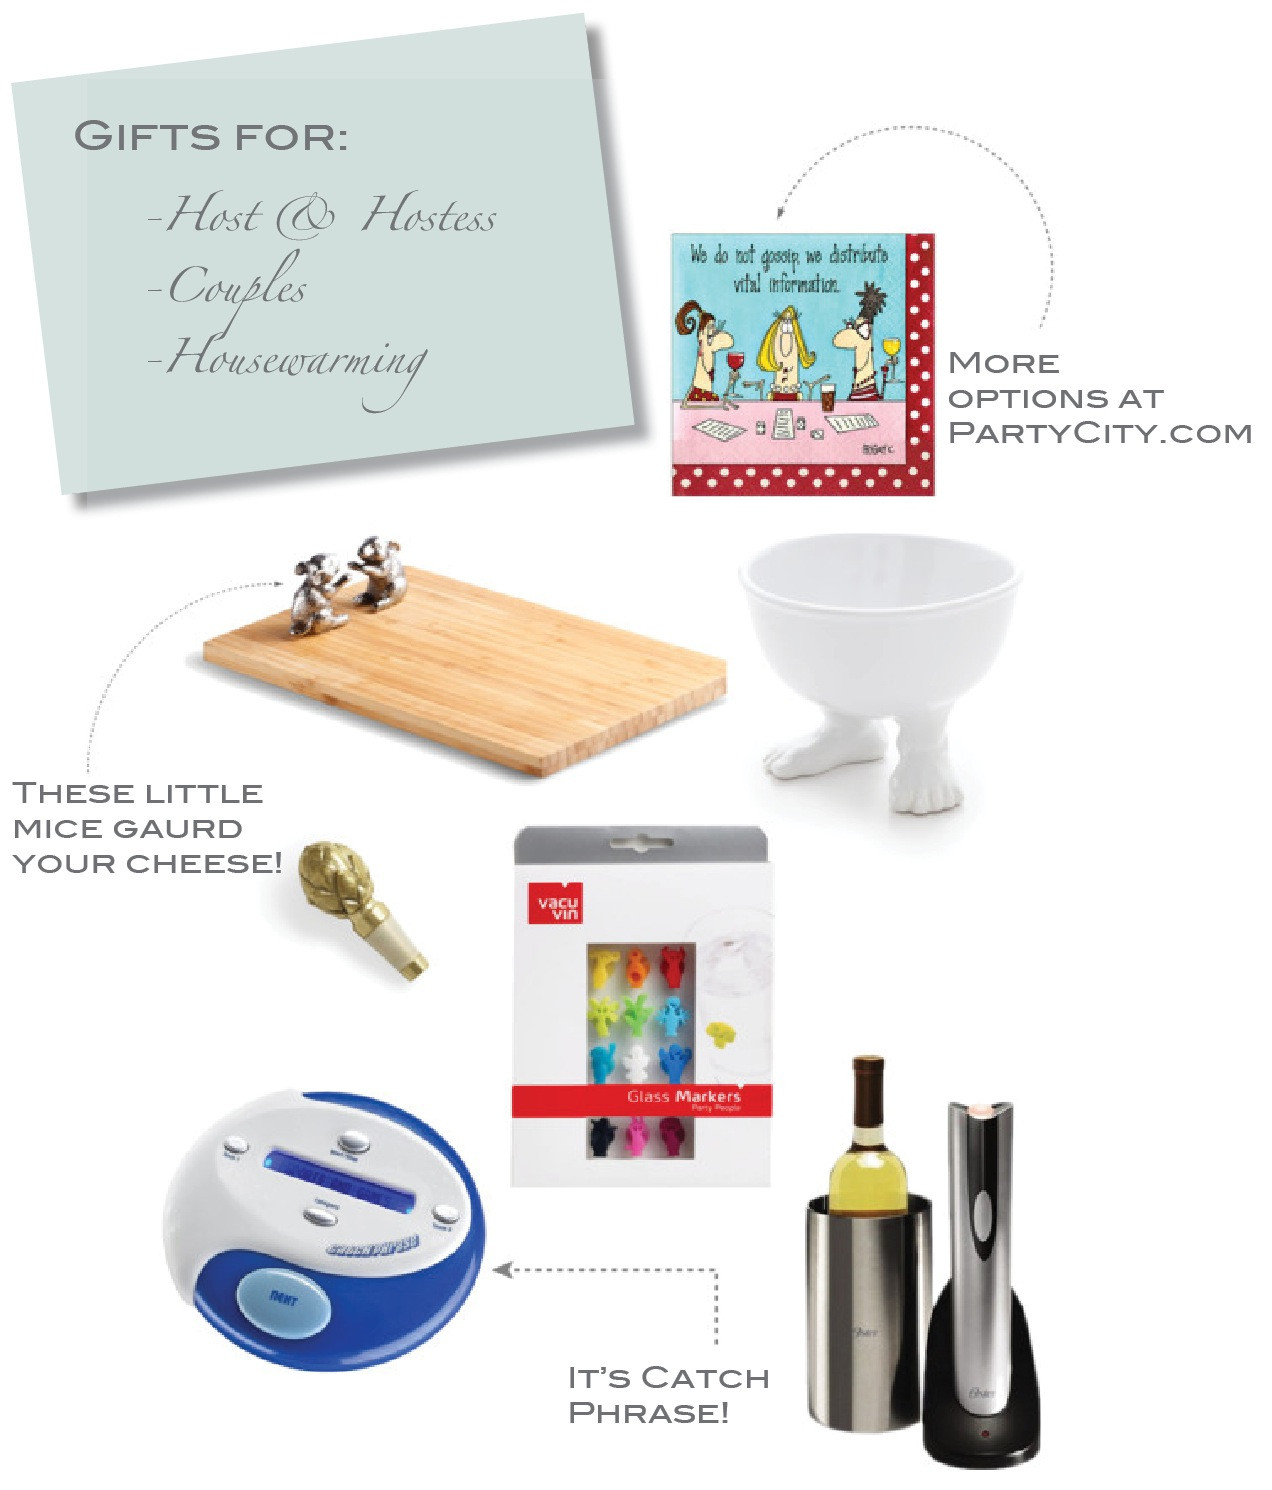 Host Gift Ideas For Couples  2012 Holiday Gift Guide 2 Hostess Housewarming Couple